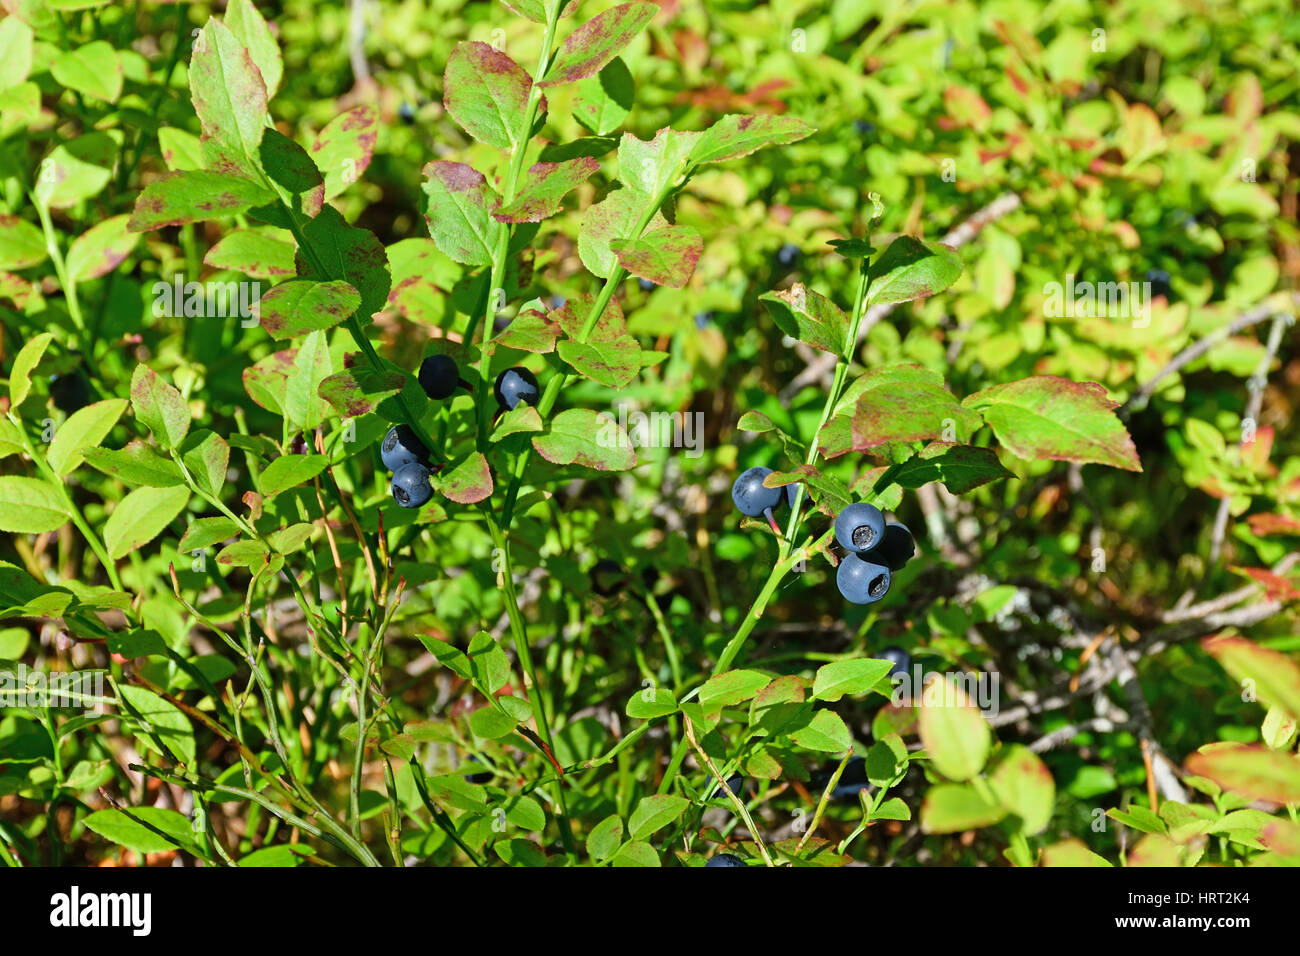 A large Bush of ripe bilberry close up under sunlight. - Stock Image